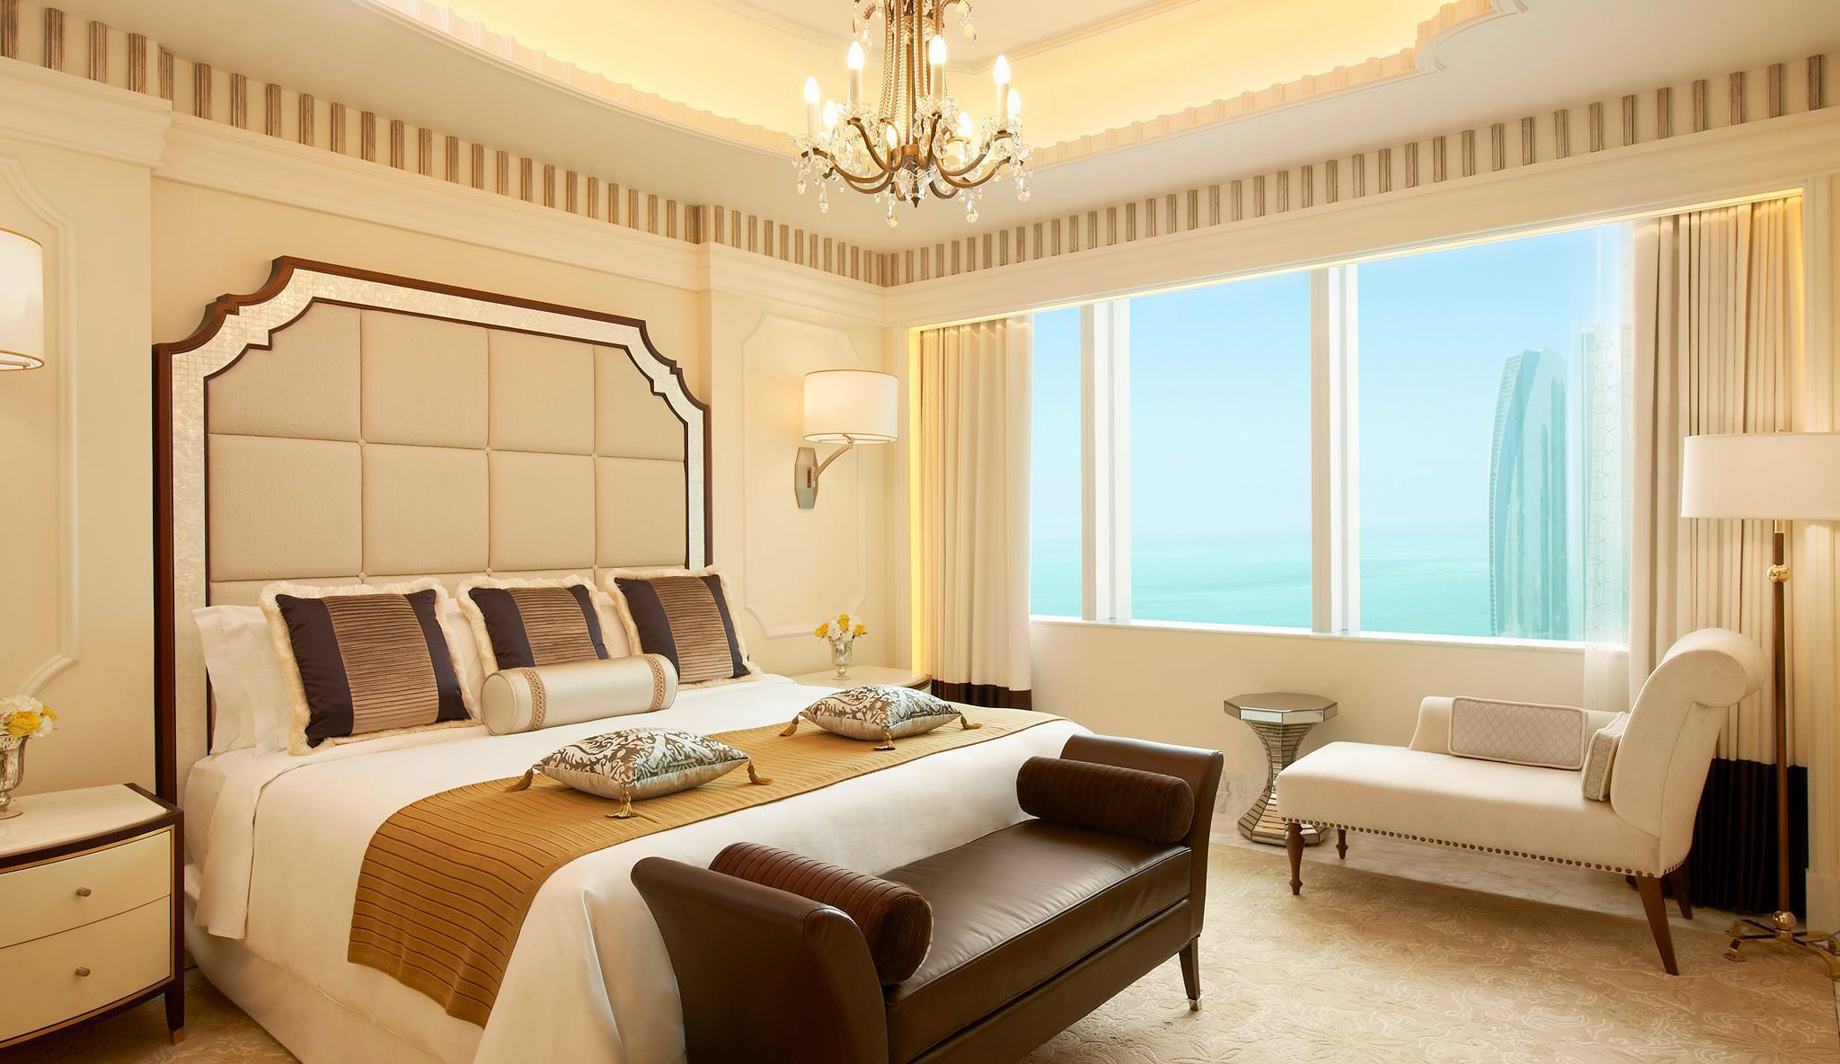 The St. Regis Abu Dhabi Luxury Hotel – Abu Dhabi, United Arab Emirates – Luxury Suite Bedroom